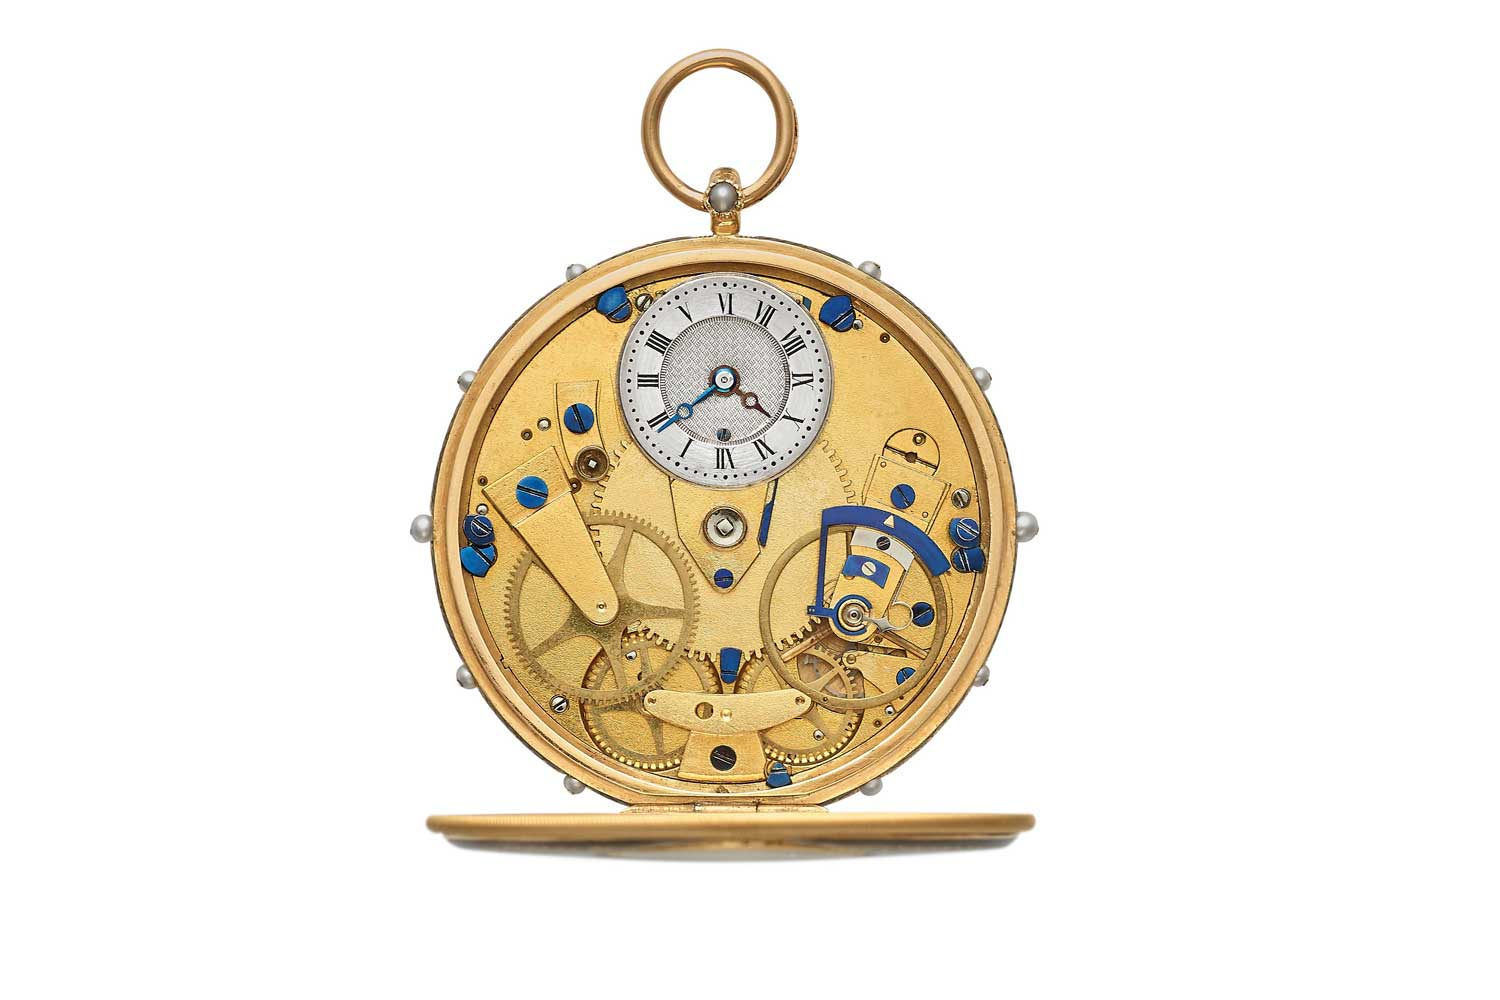 A creation of Abraham-Louis Breguet's. no. 2292, showcasing how his design language still exists and inspires modern day Breguet